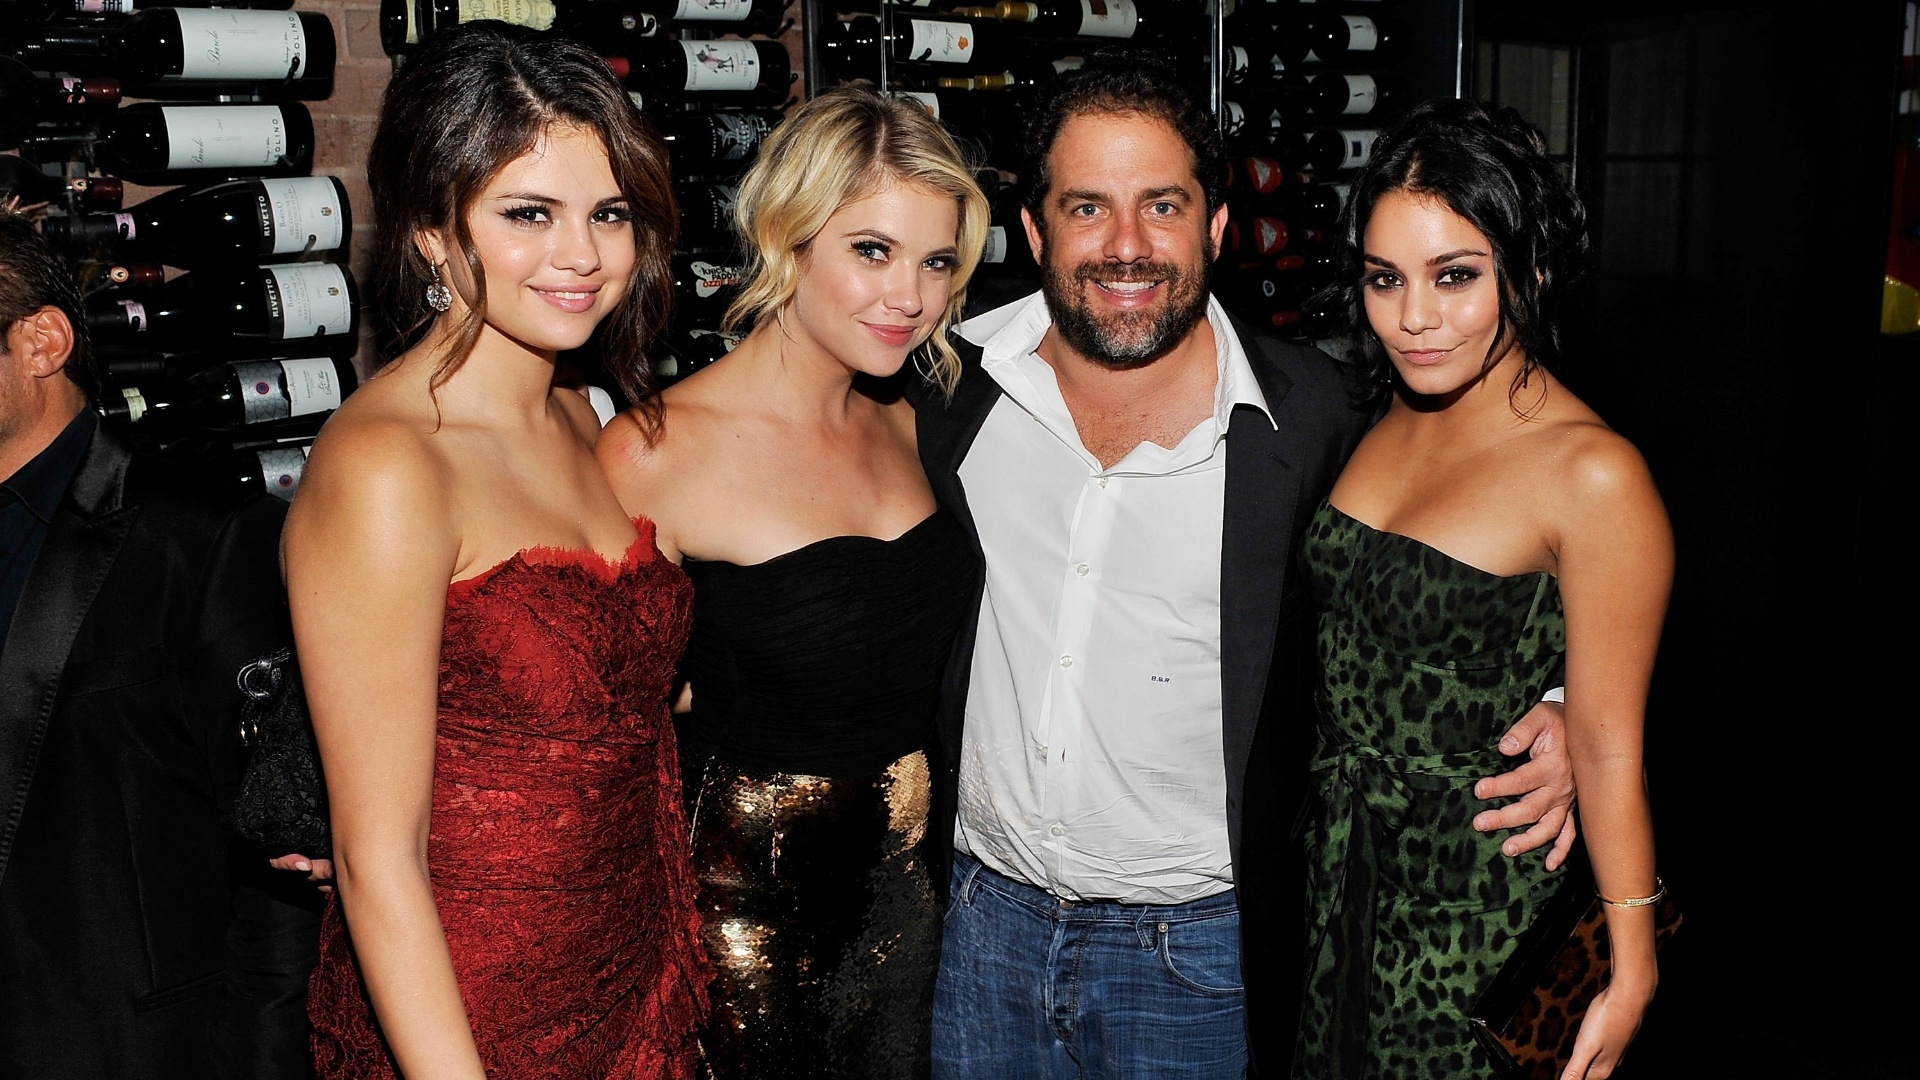 As atrizes Selena Gomez, Ashley Benson e Vanessa Hudgens (da esq para dir) abraam o diretor Brett Ratner durante um jantar de comemorao do filme 